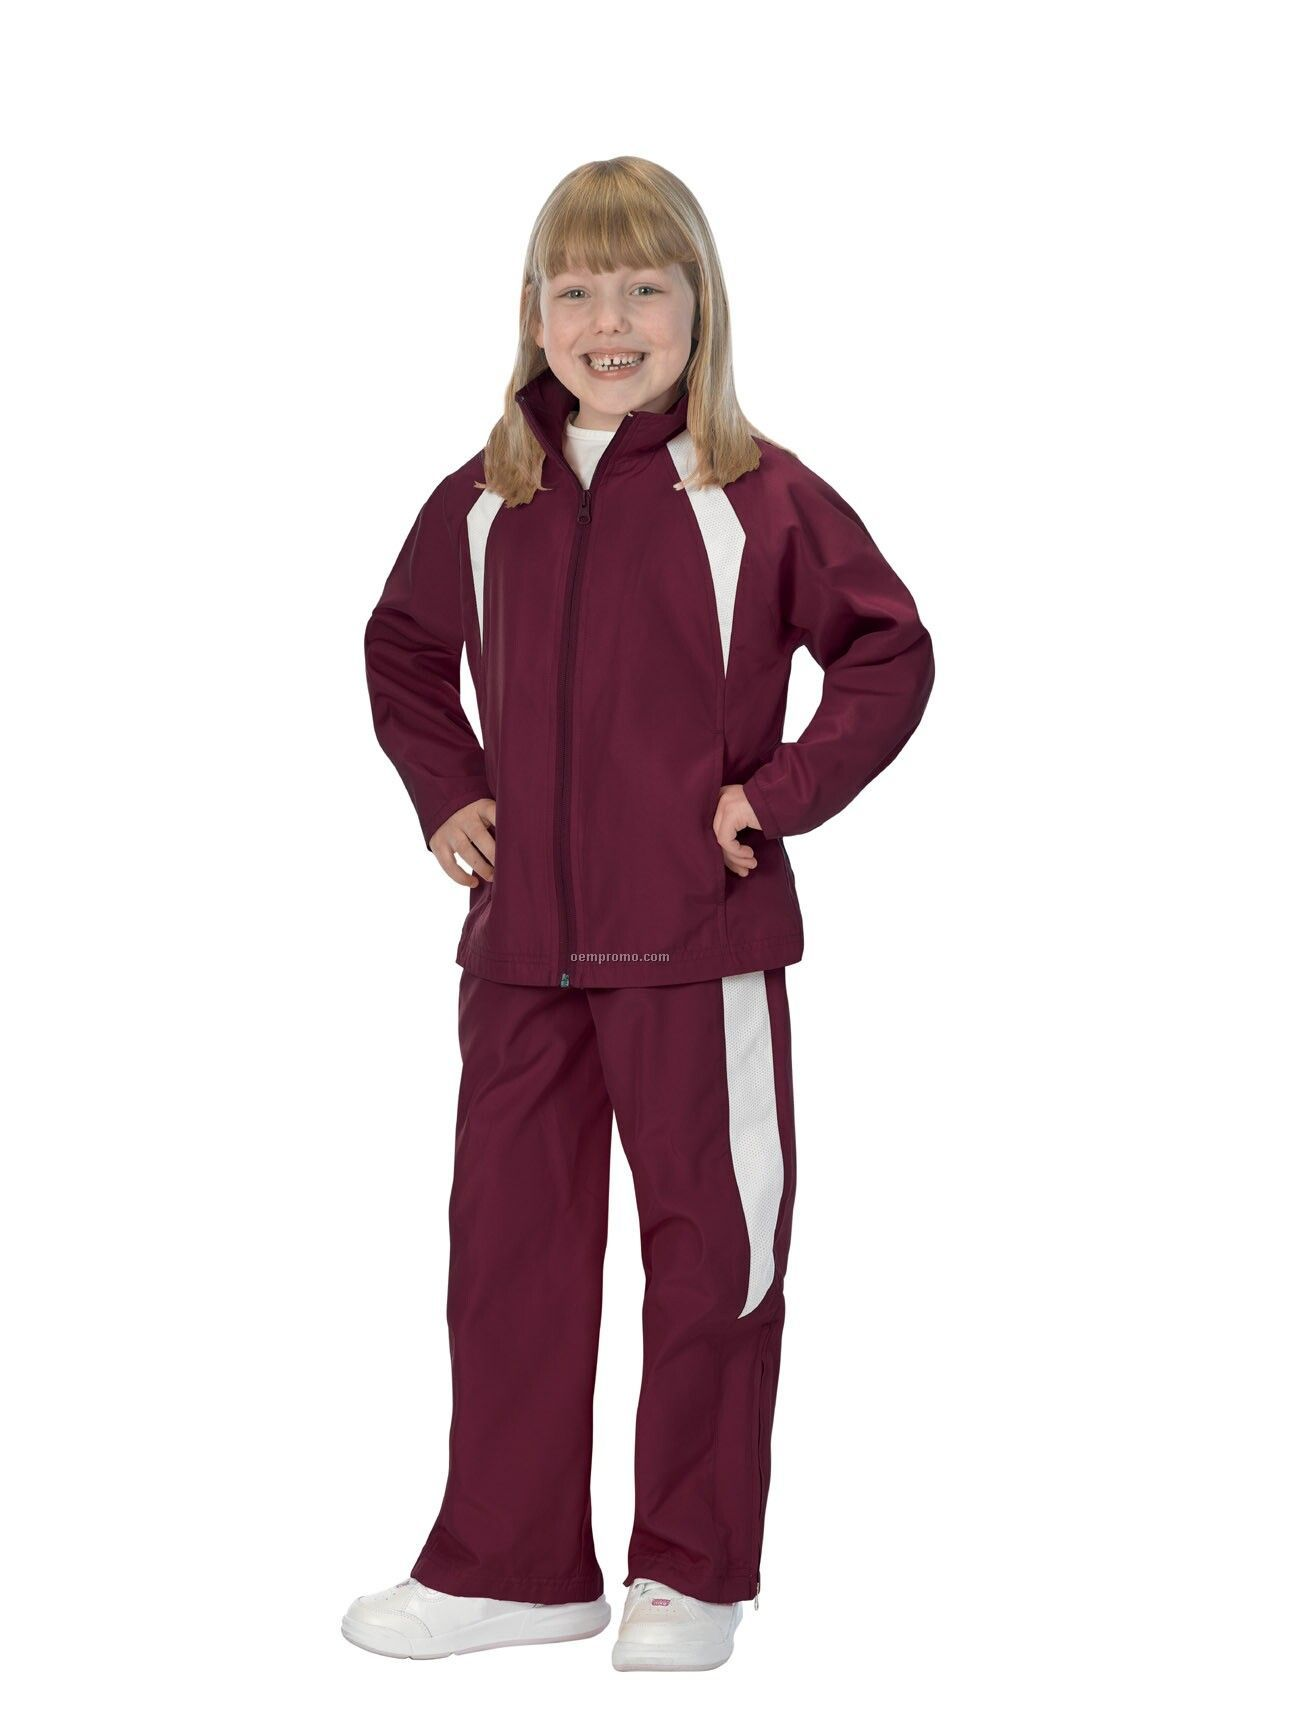 Girls' Team Pro Pant (S-l)